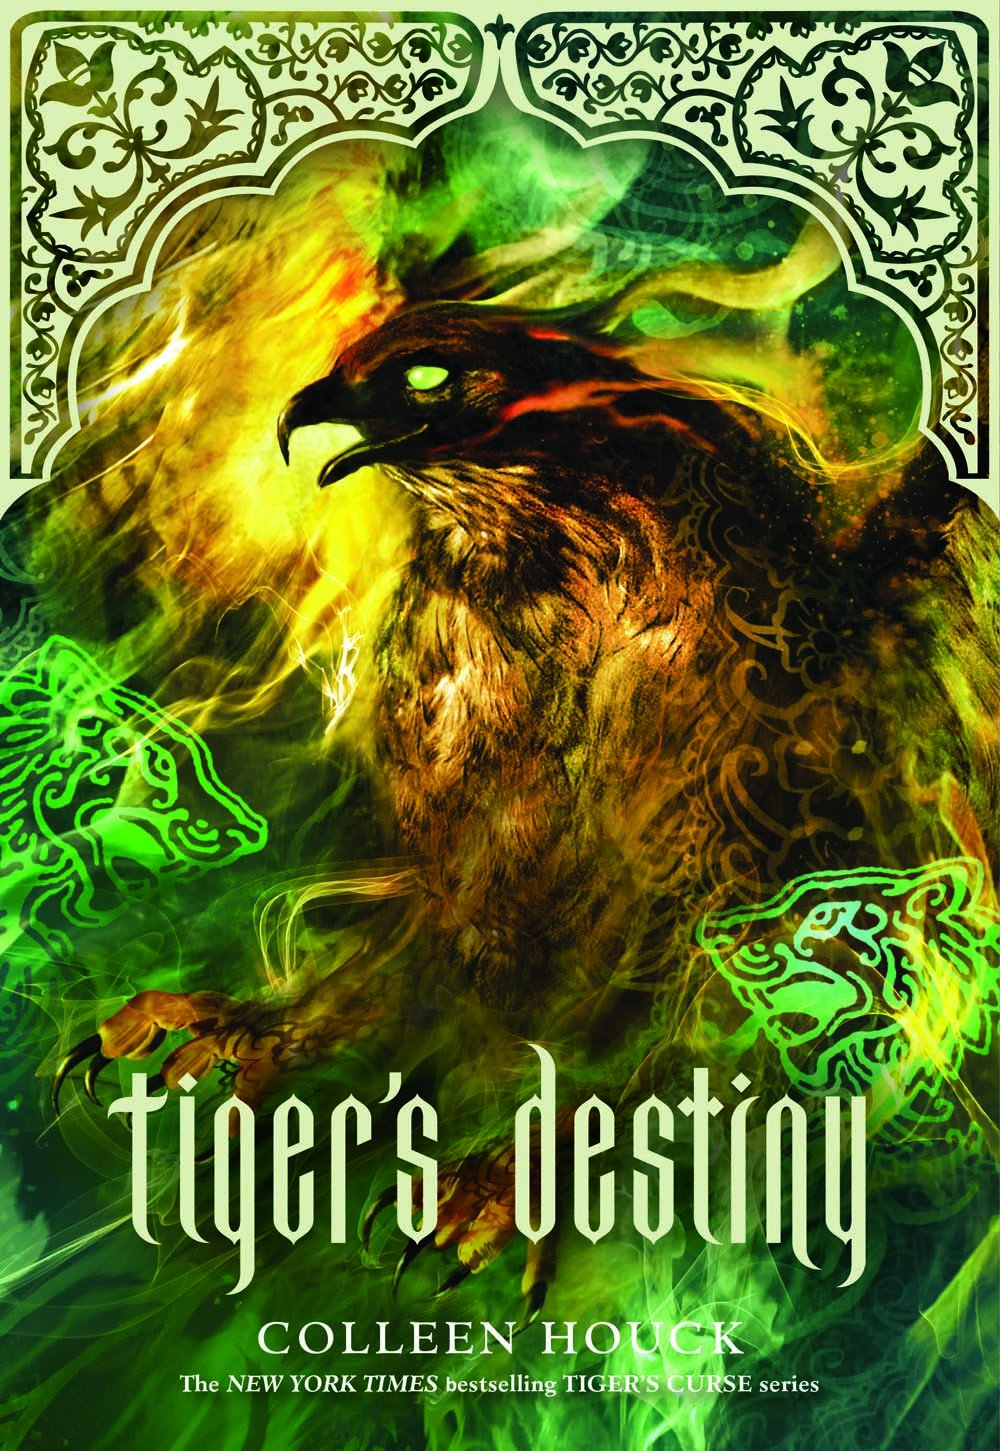 Tiger's Destiny (book 4 In The Tiger's Curse Series): Colleen Houck:  9781402798436: Amazon: Books